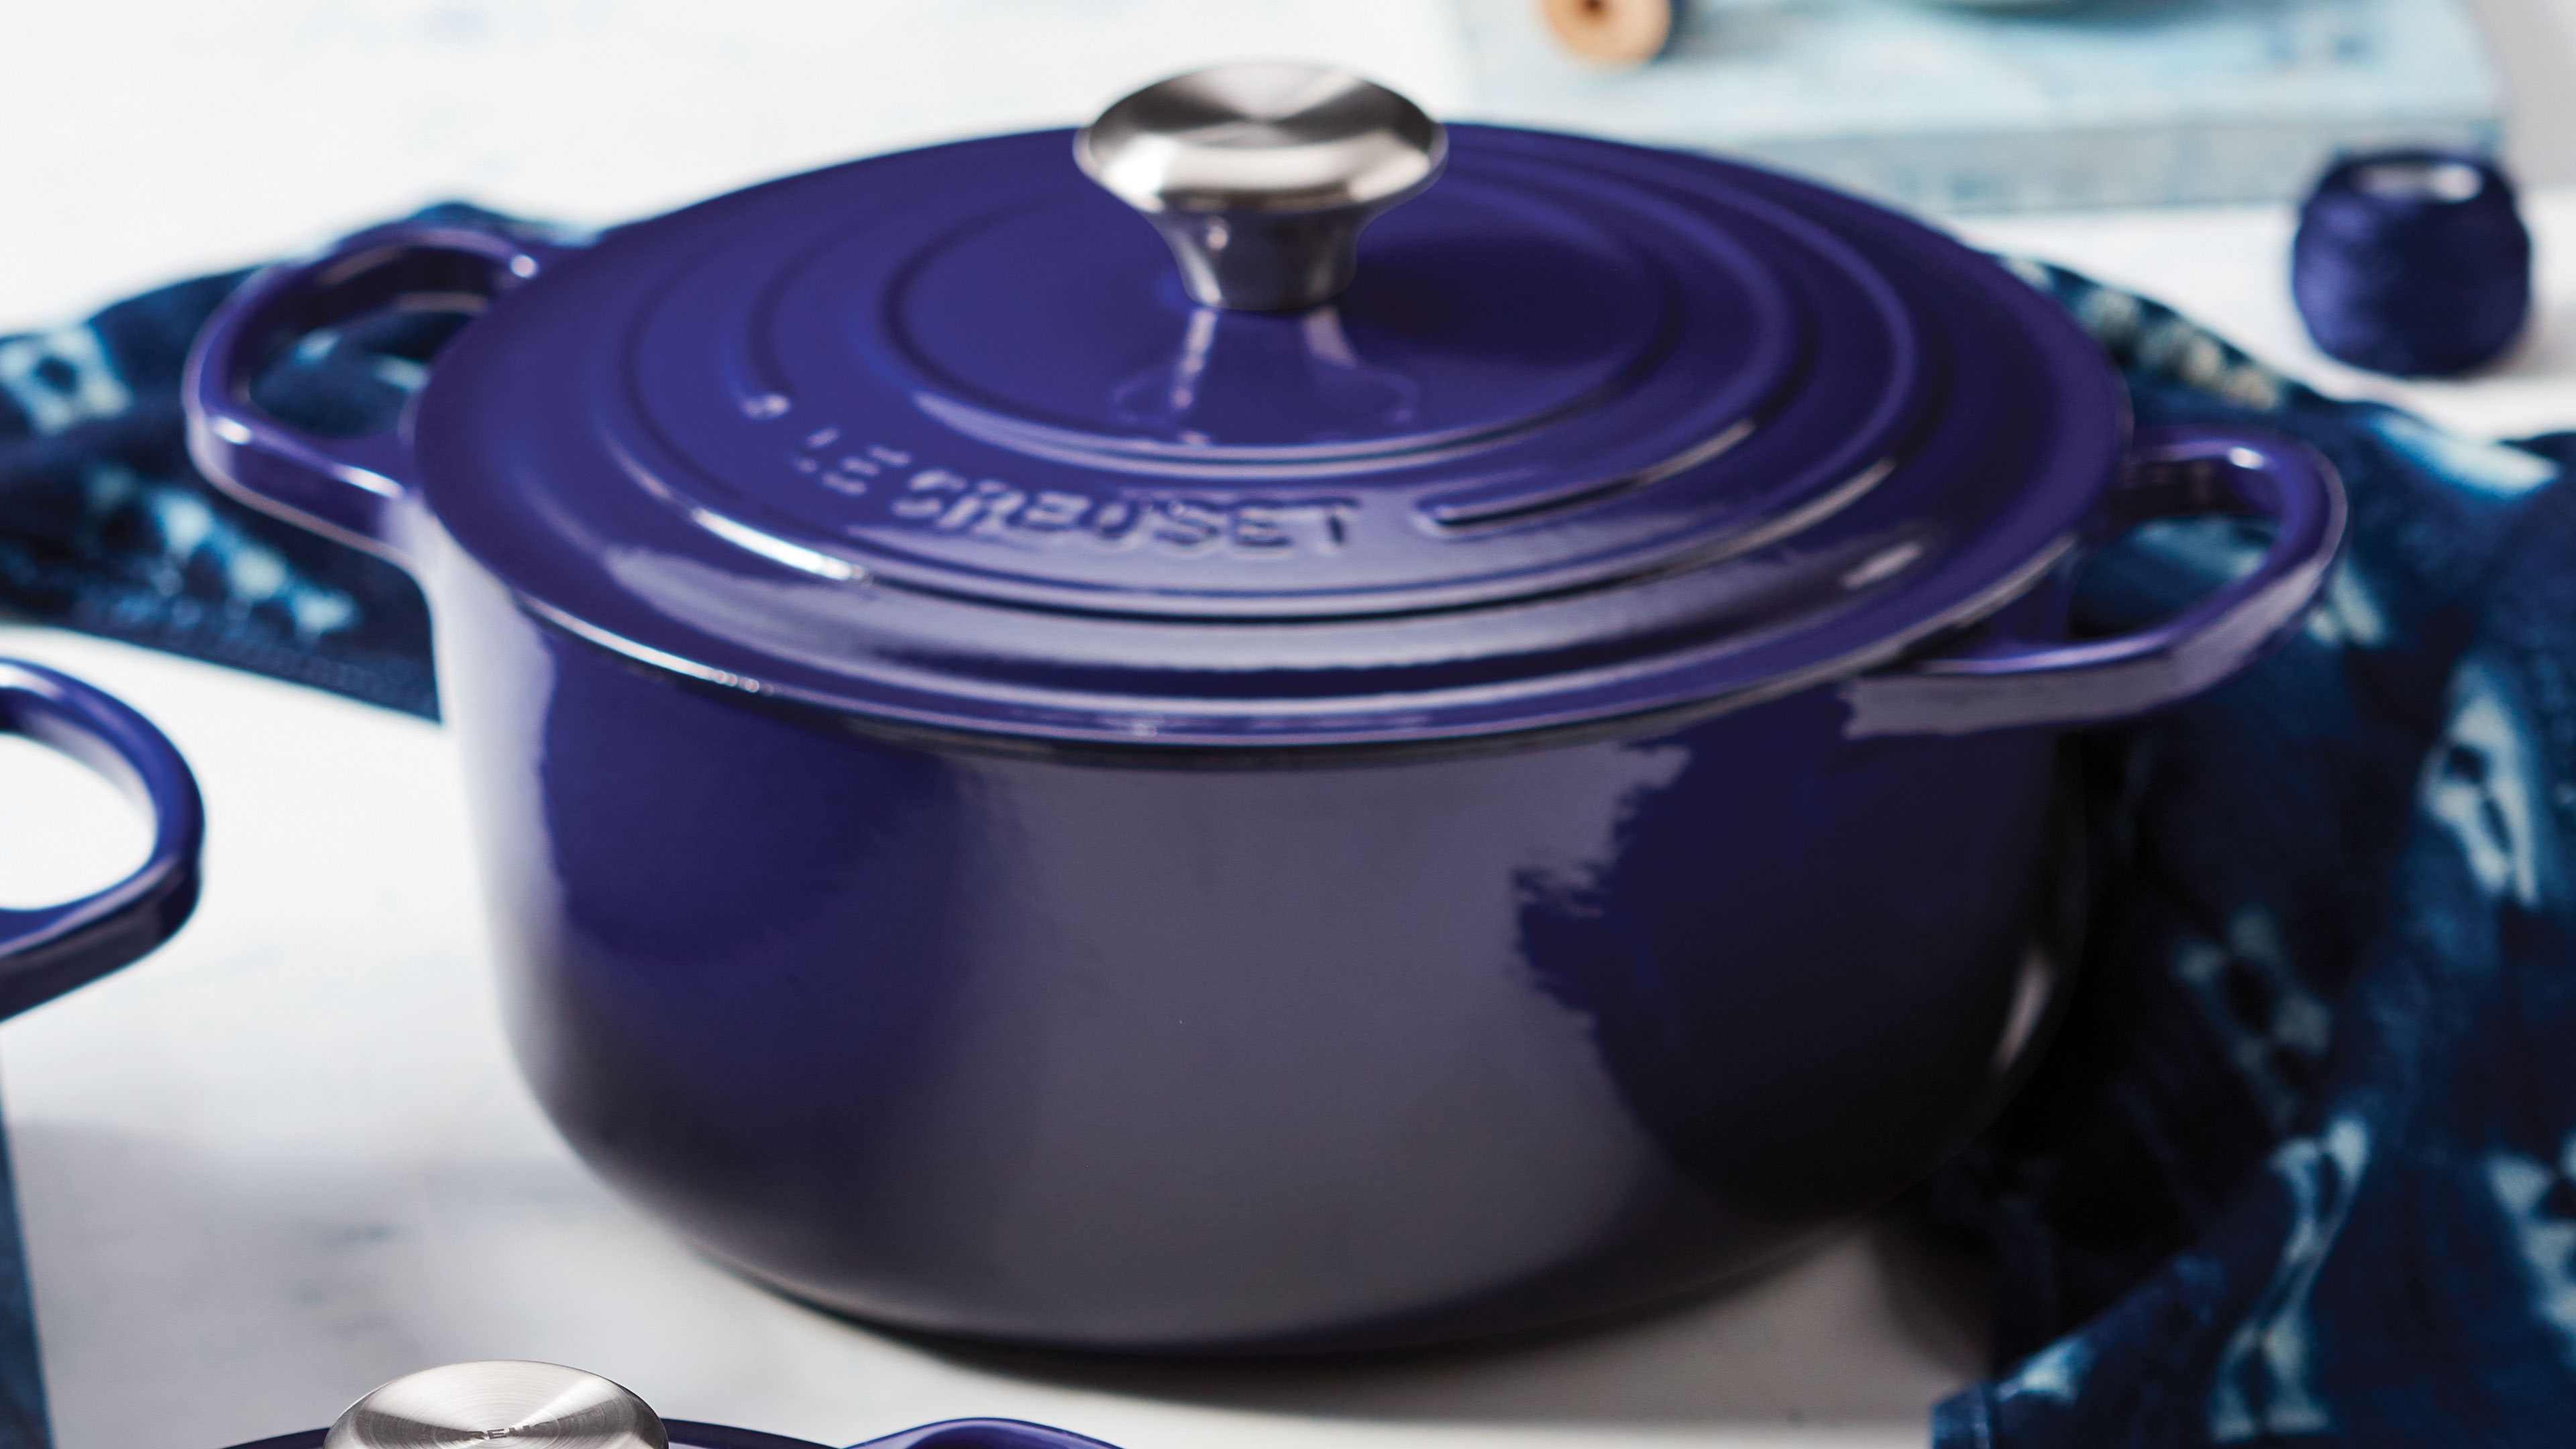 Le Creuset Signature Cast Iron Round Dutch Oven 2 75